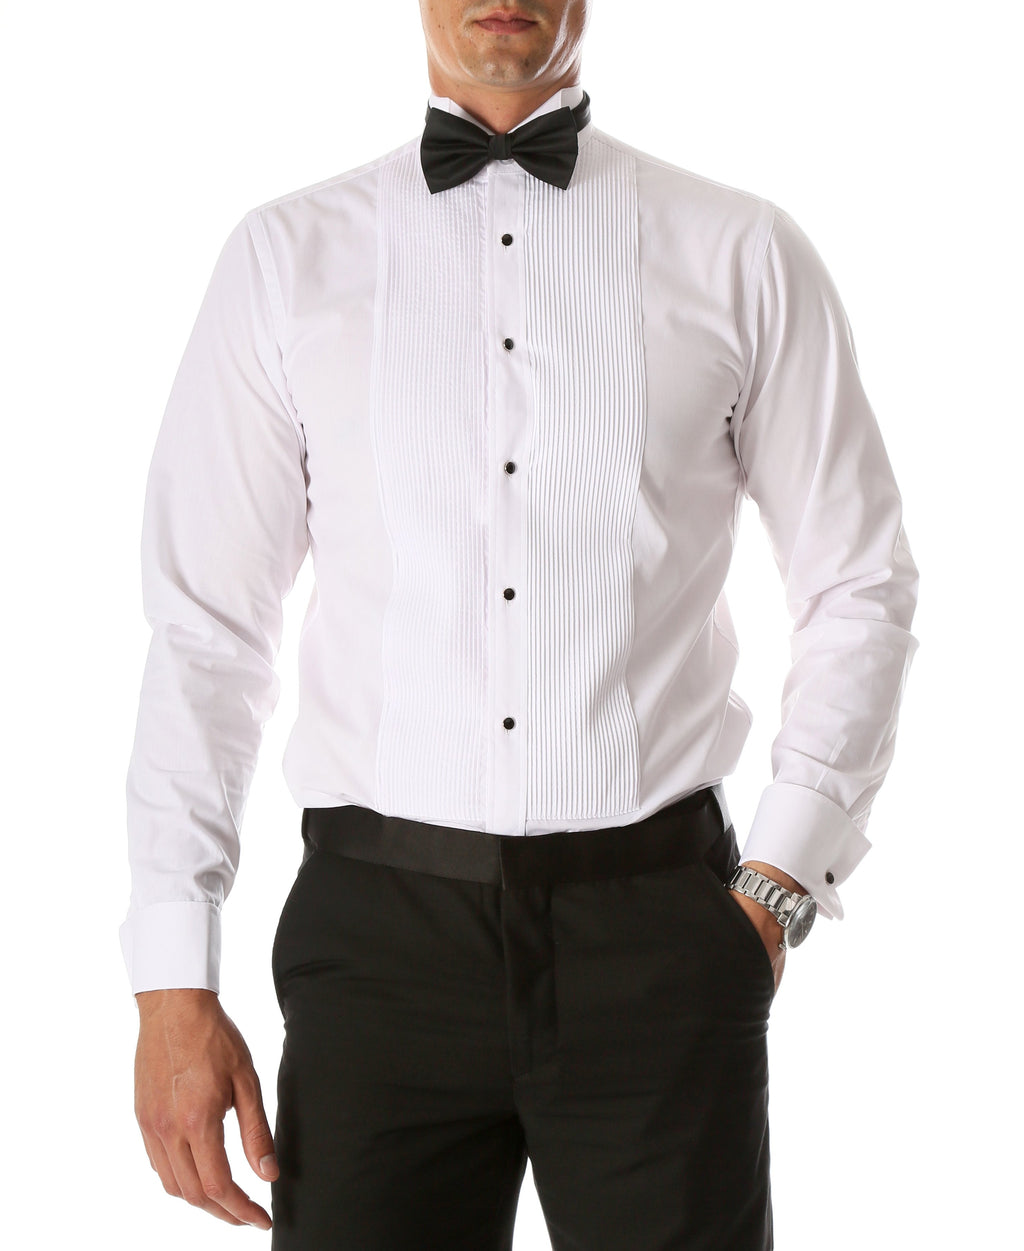 Ferrecci Men's Max White Slim Fit Wing Tip Collar Pleated Tuxedo Shirt - Giorgio's Menswear